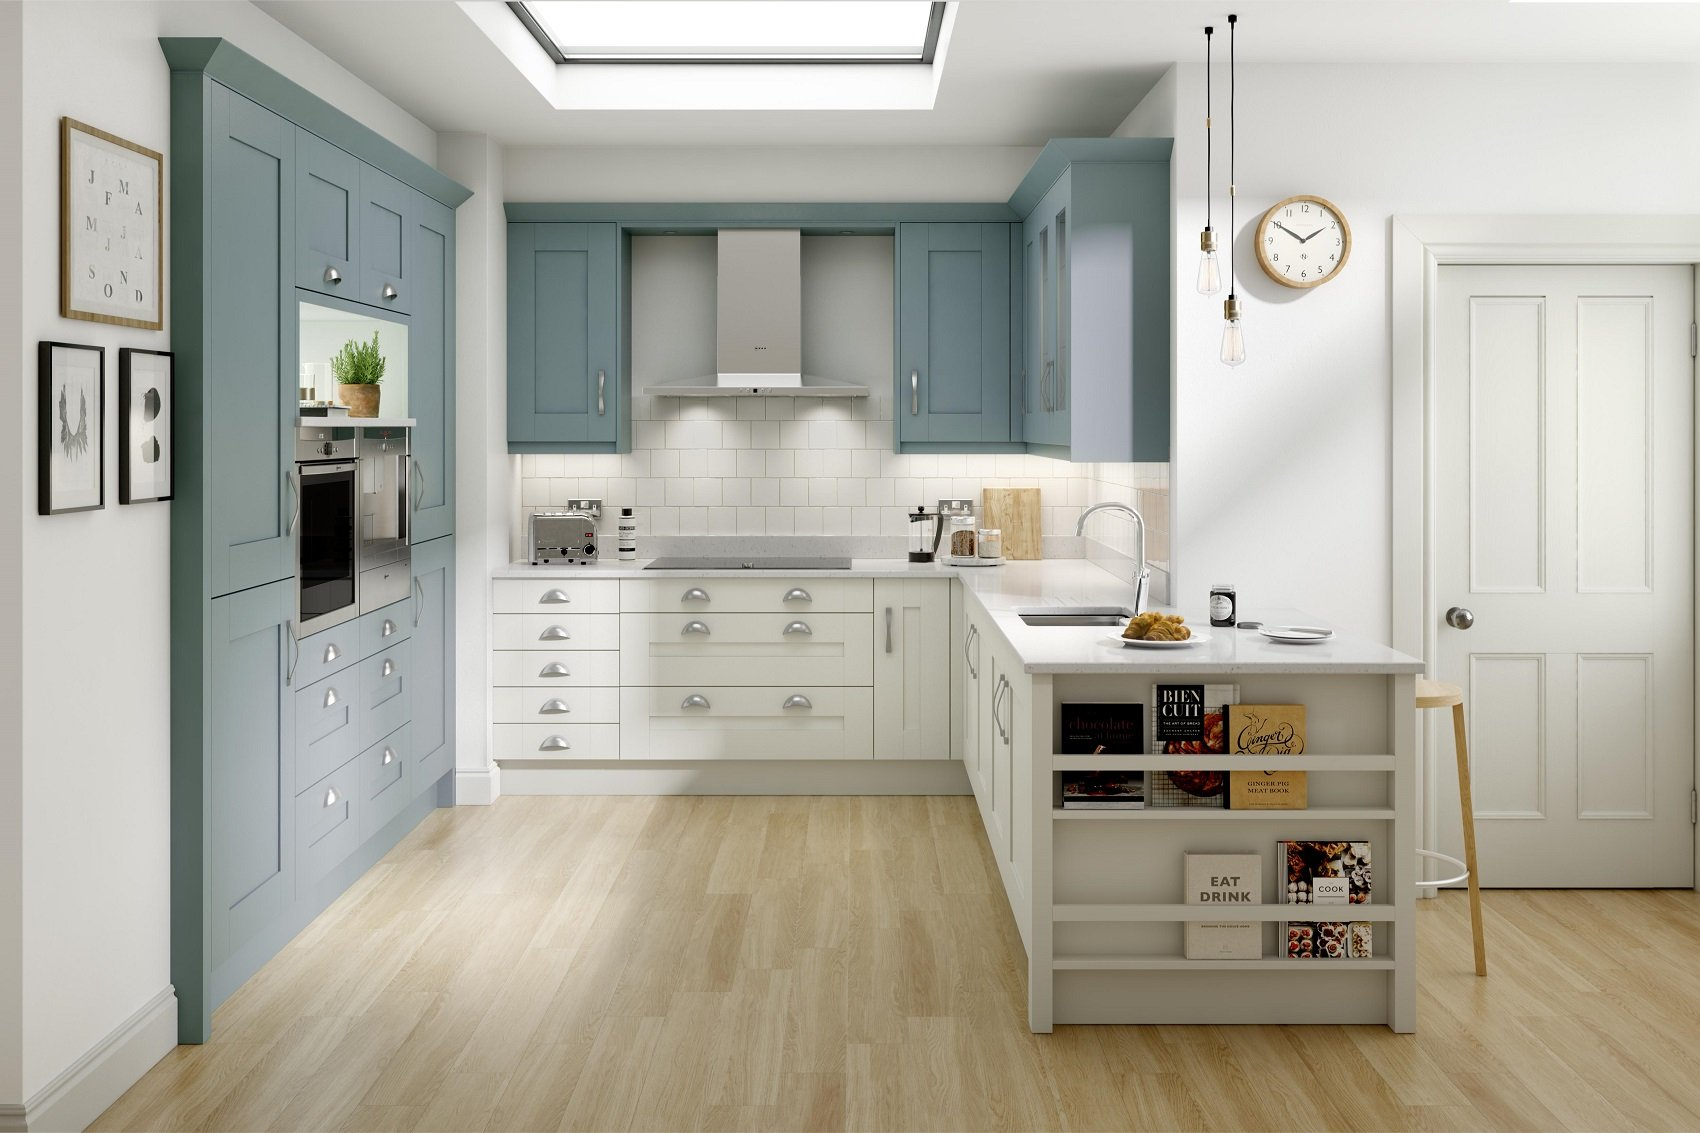 family friendly kitchen design